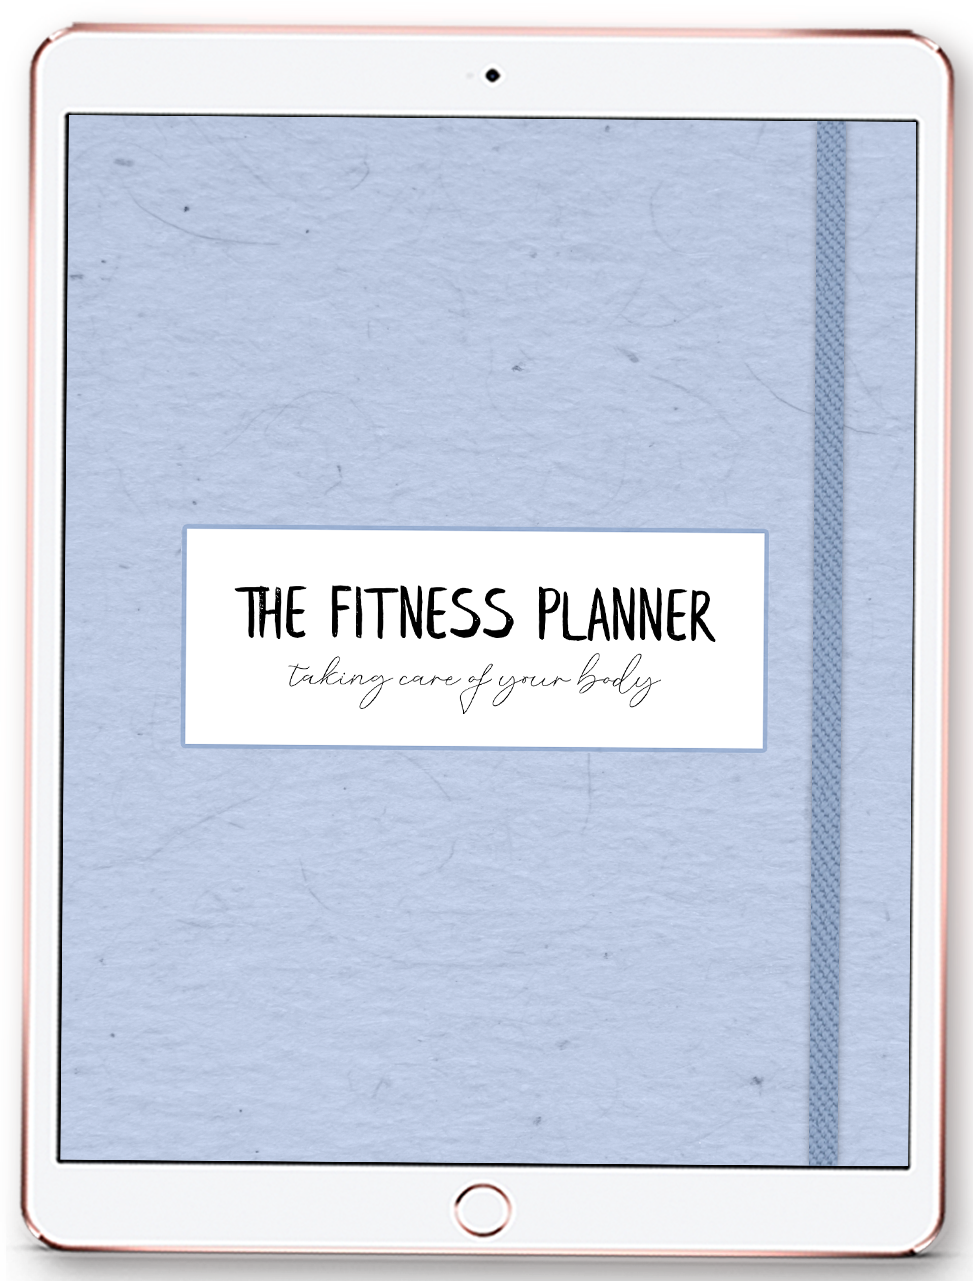 Make Your FitnessGoals a Reality - Stick to your plan this time around because now is the best time to start! Plan at any stage of your fitness journey.